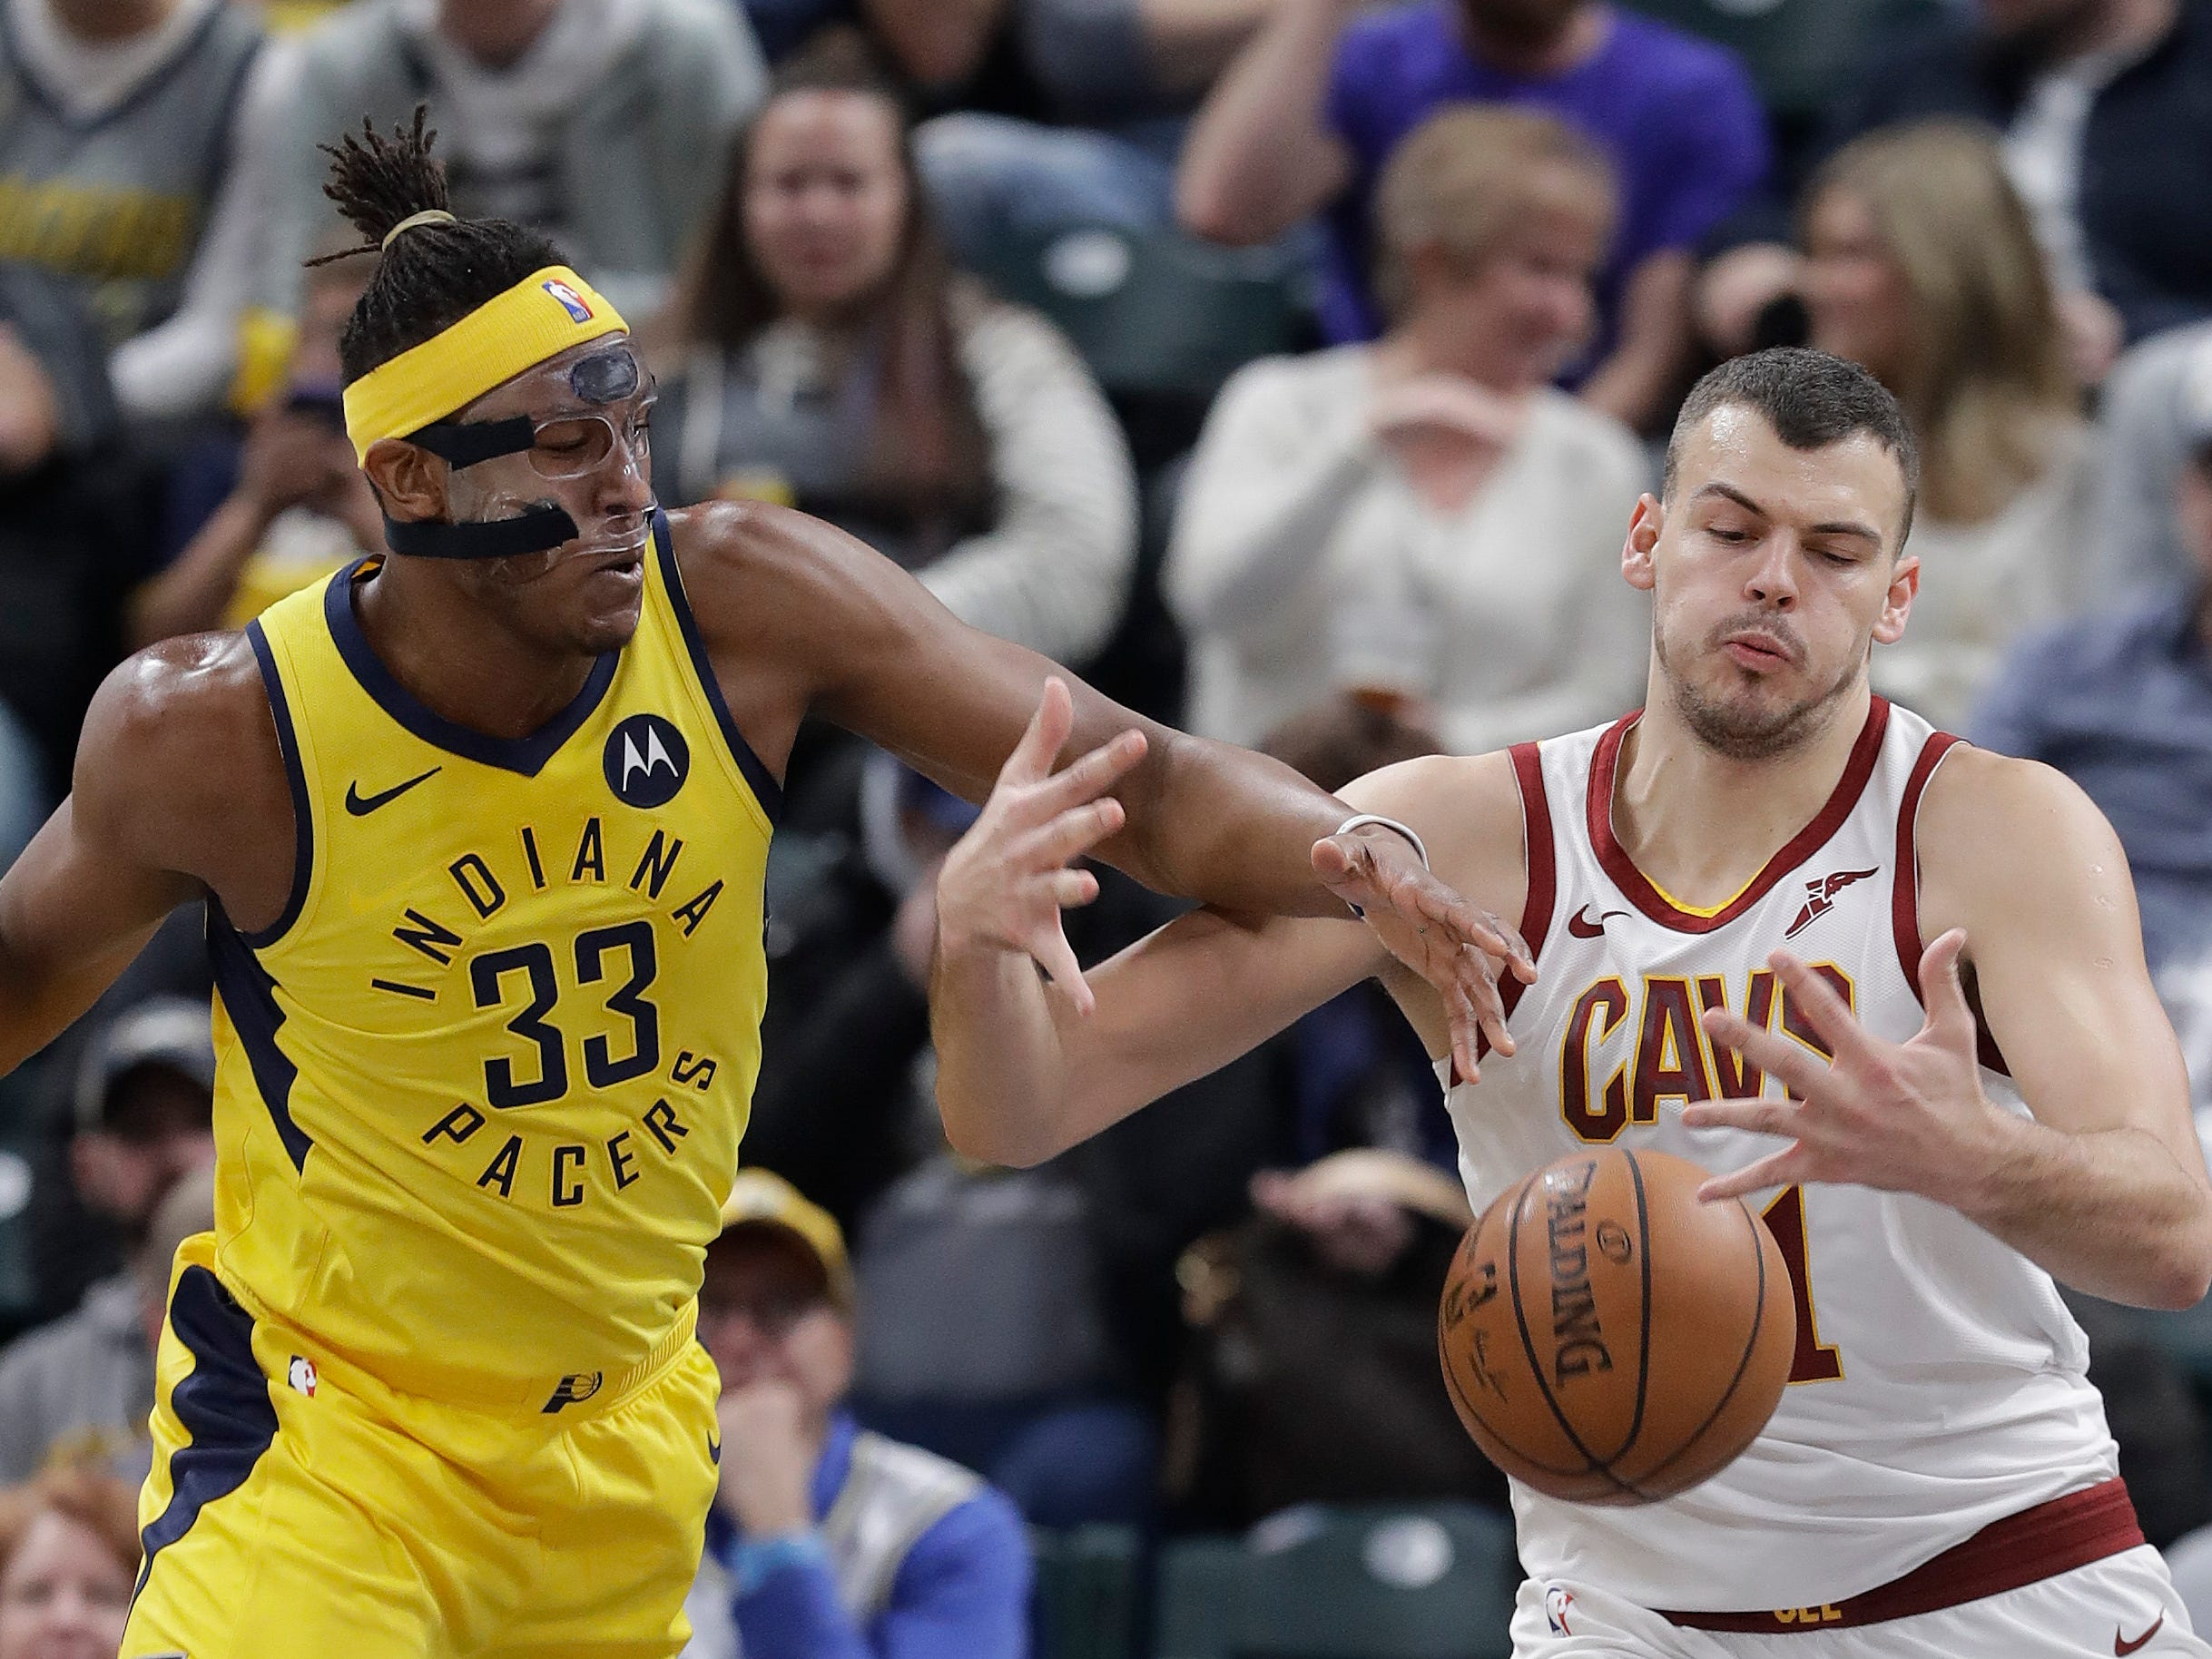 Indiana Pacers' Myles Turner and Cleveland Cavaliers' Ante Zizic battle for the ball during the first half.